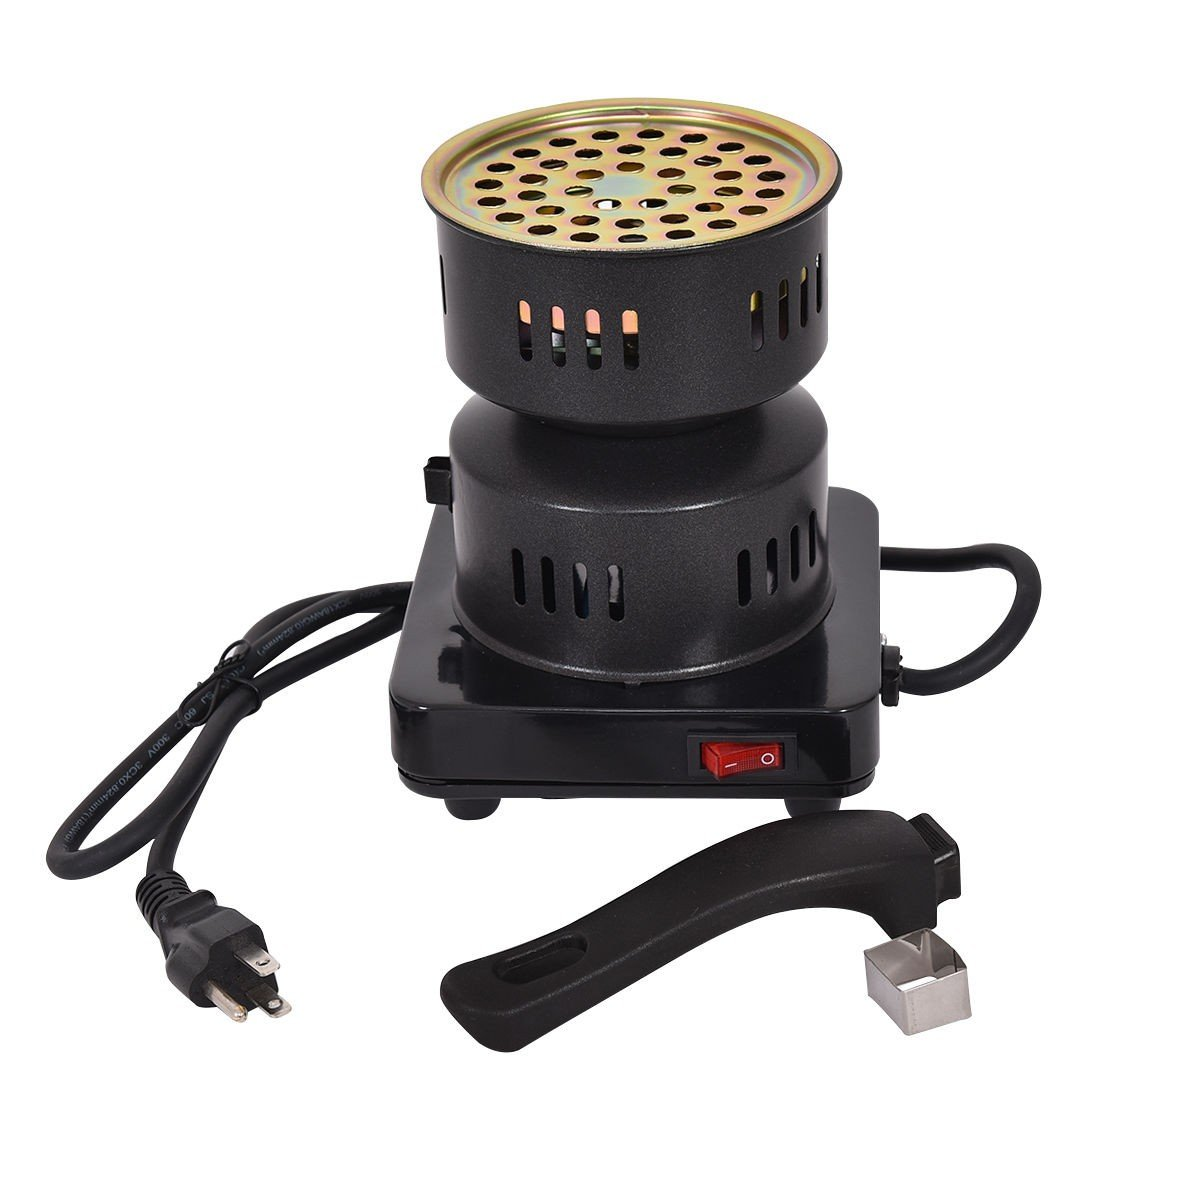 Electric Coal Starter Heater Stove Charcoal Burner BBQ - By Choice Products